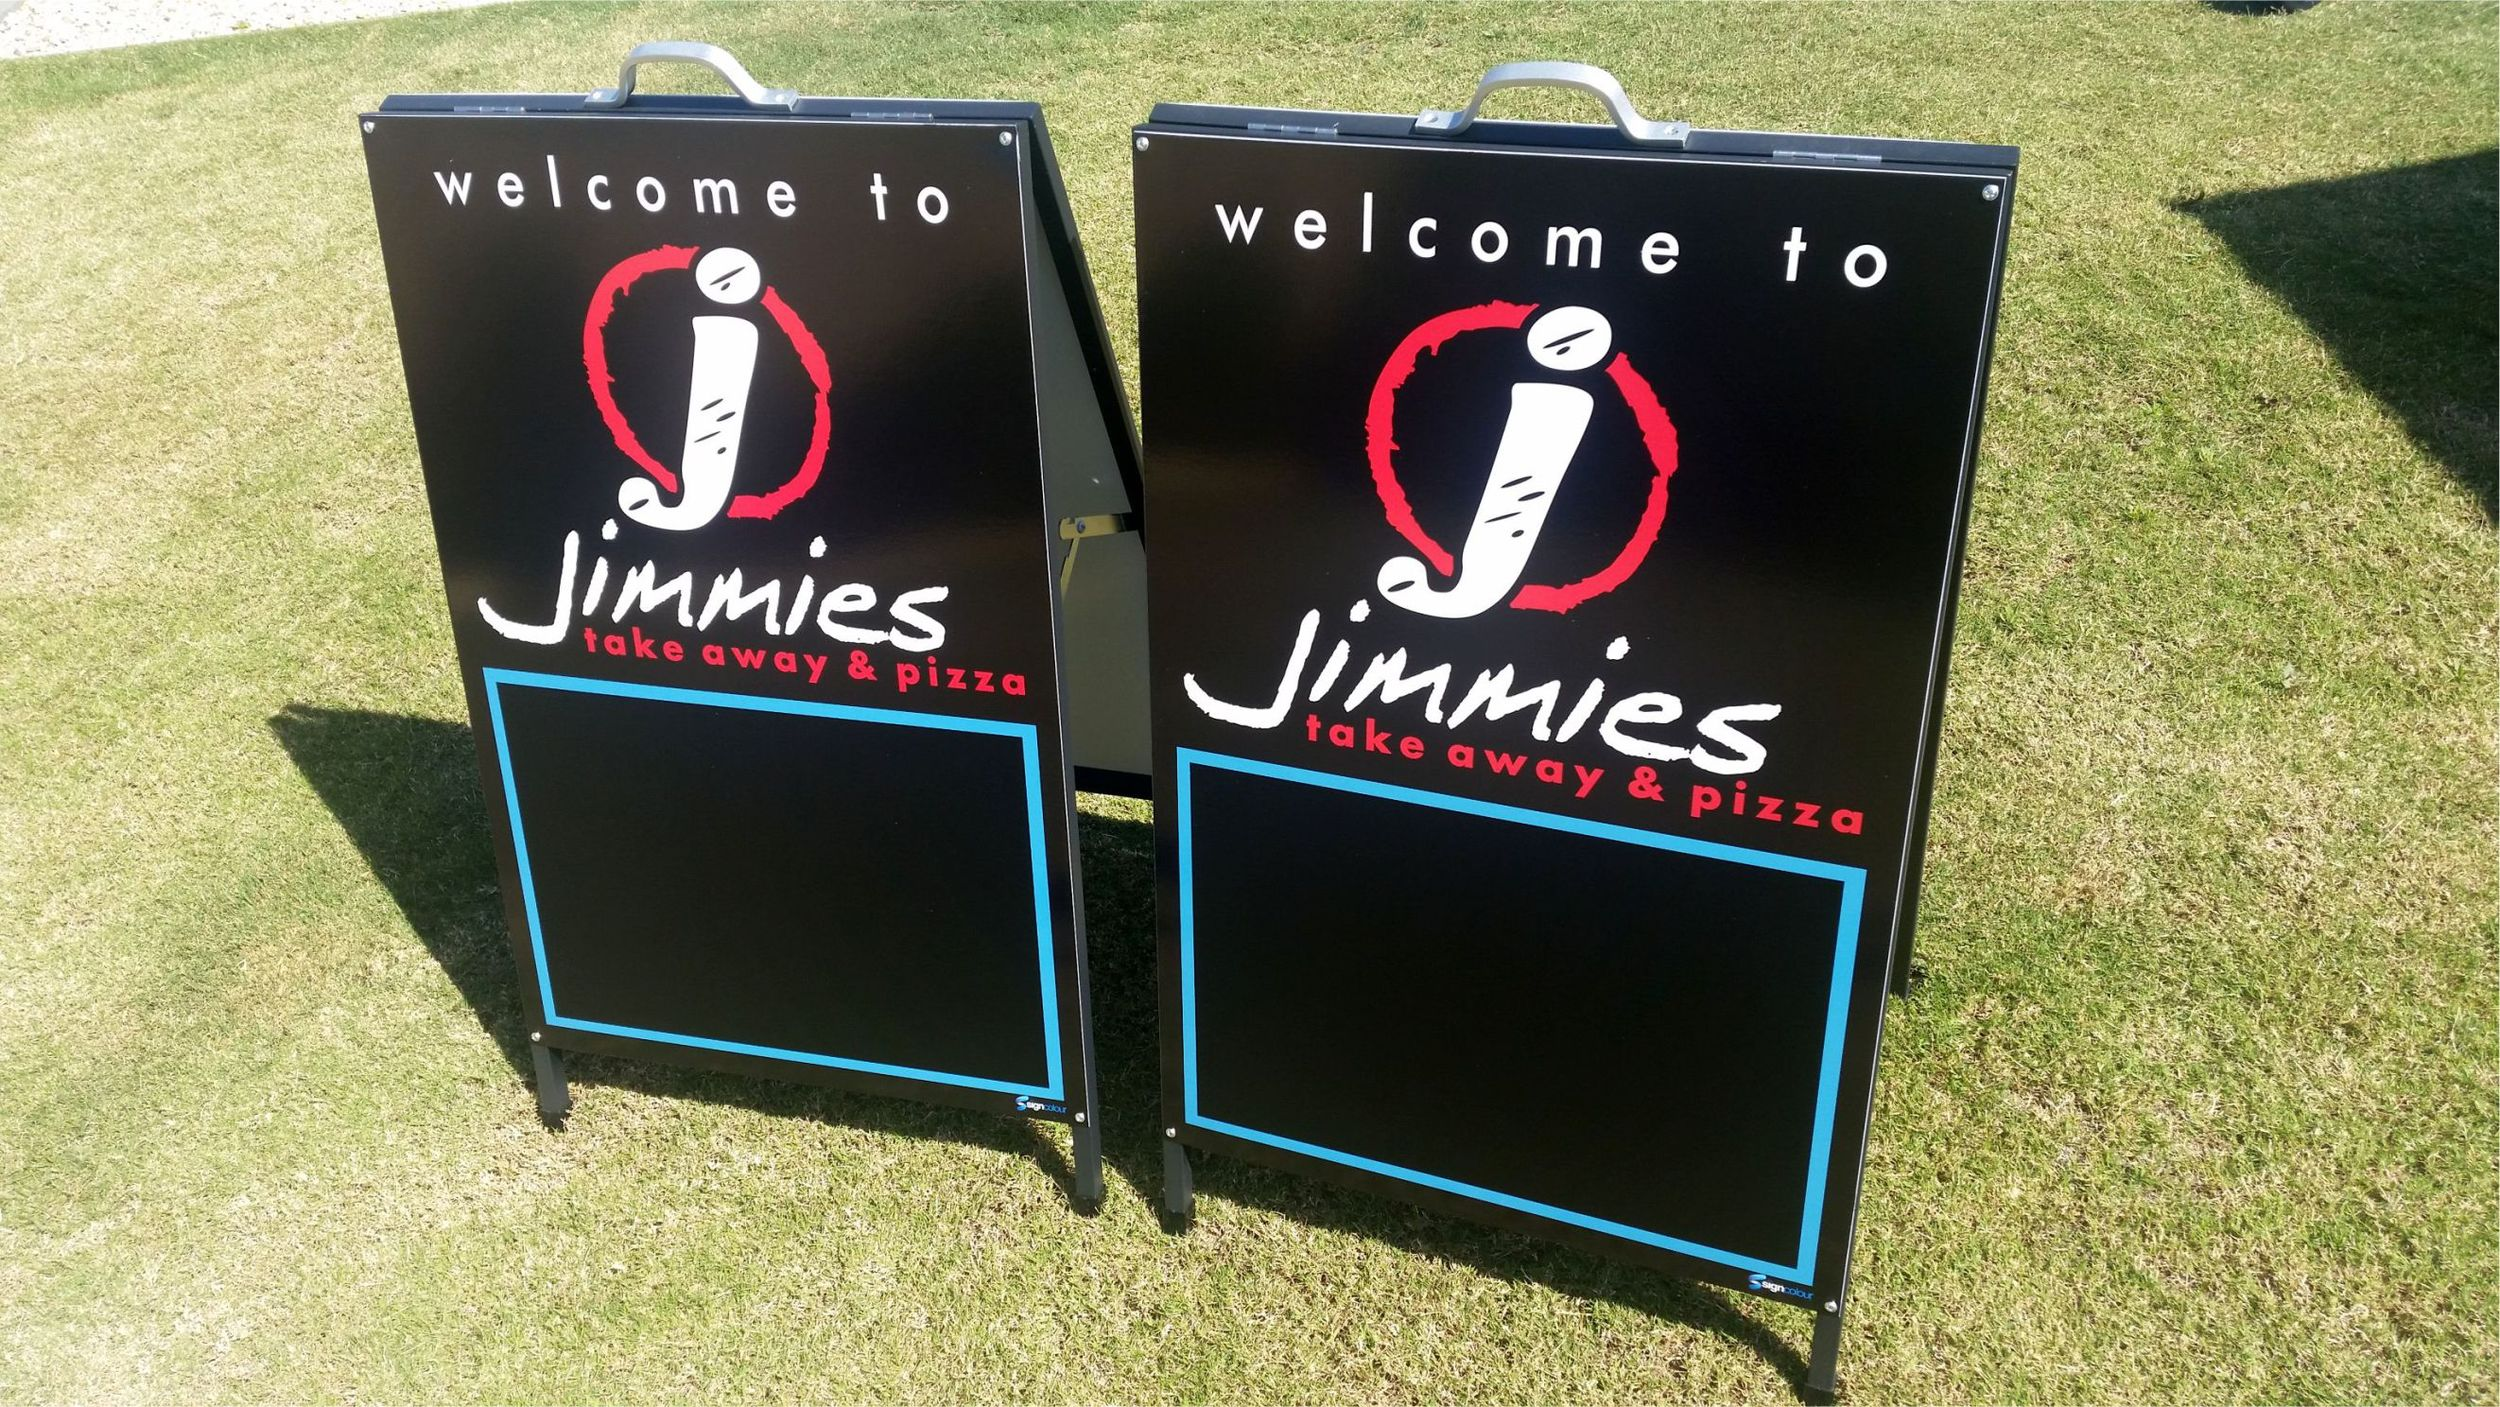 Jimmies Sign Colour - Sign Adelaide - Signage Adelaide - Banner Adelaide - Signage Adelaide - Sign Lonsdale - Sign Aldinga - Sign Morphett Vale - Sign Victor Harbor - A Frame Signs.jpg